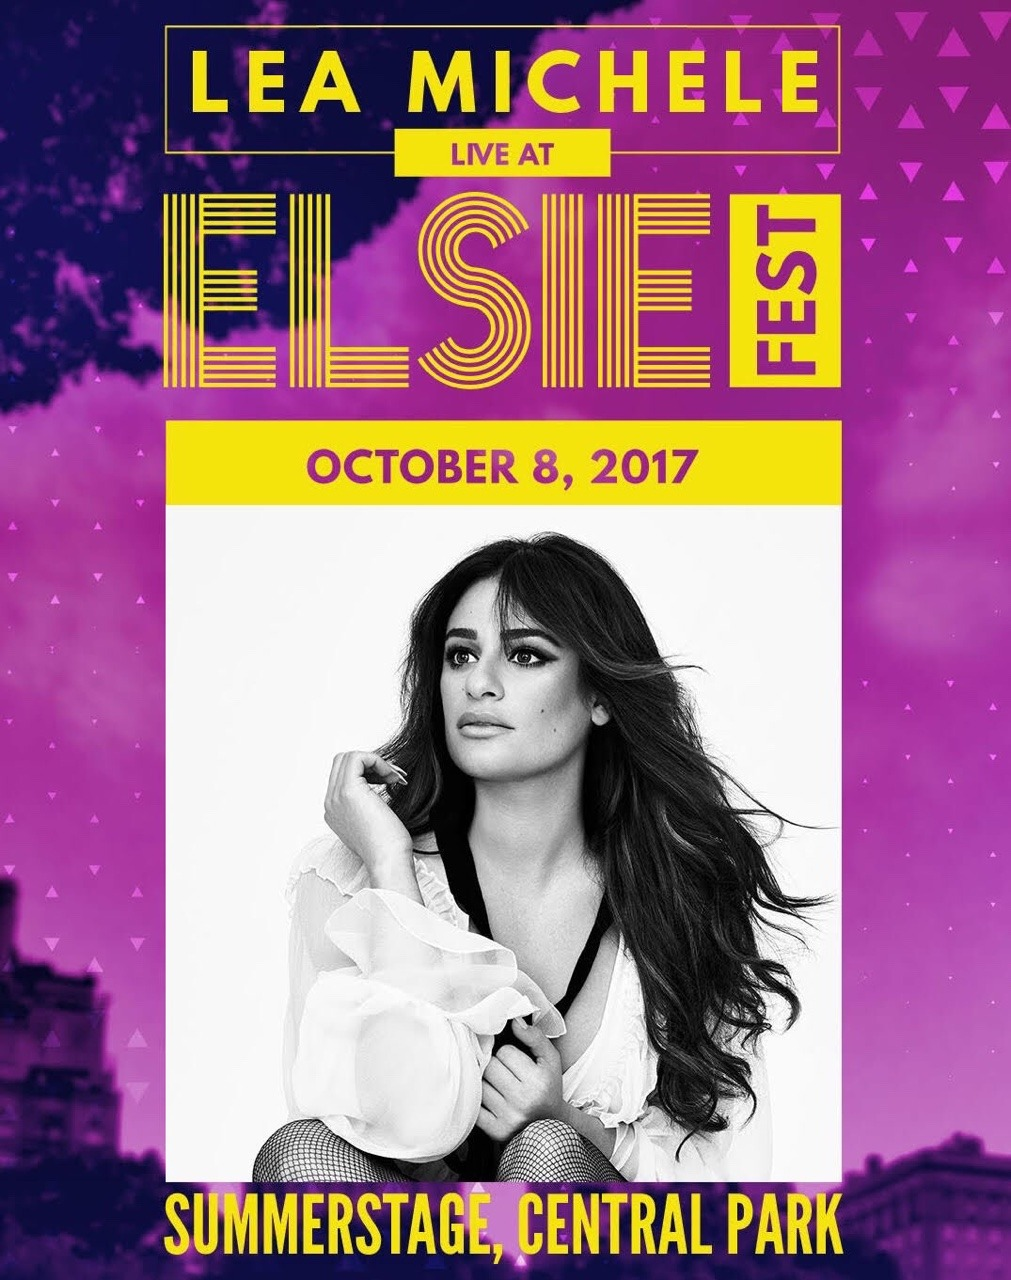 Tomorrow - Elsie Fest 2017 Tumblr_ou0owcEhDm1ubd9qxo2_1280